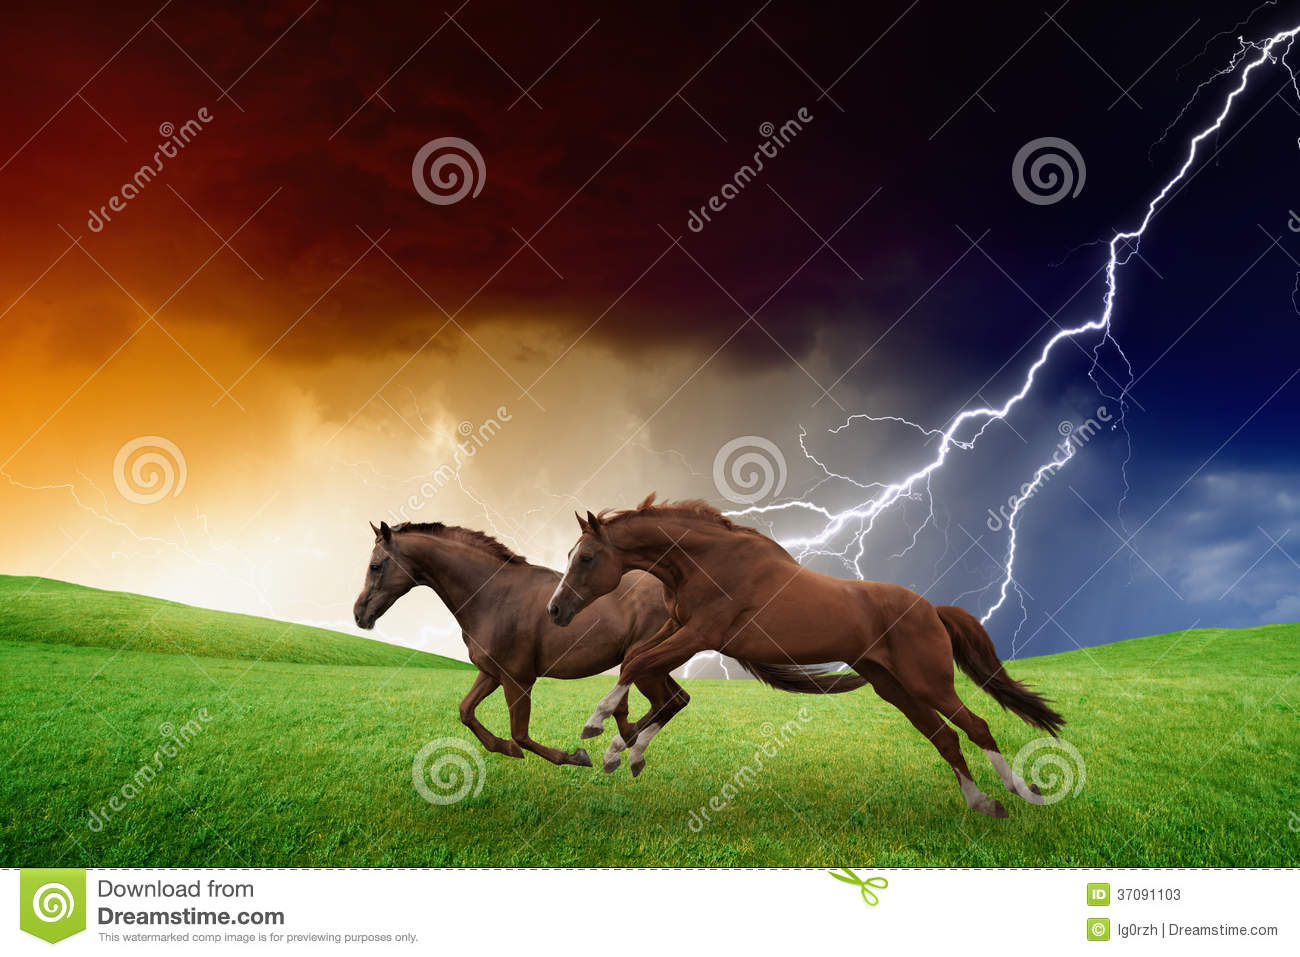 ... , dark stormy sky, lightning, picture for chinese year of horse 2014